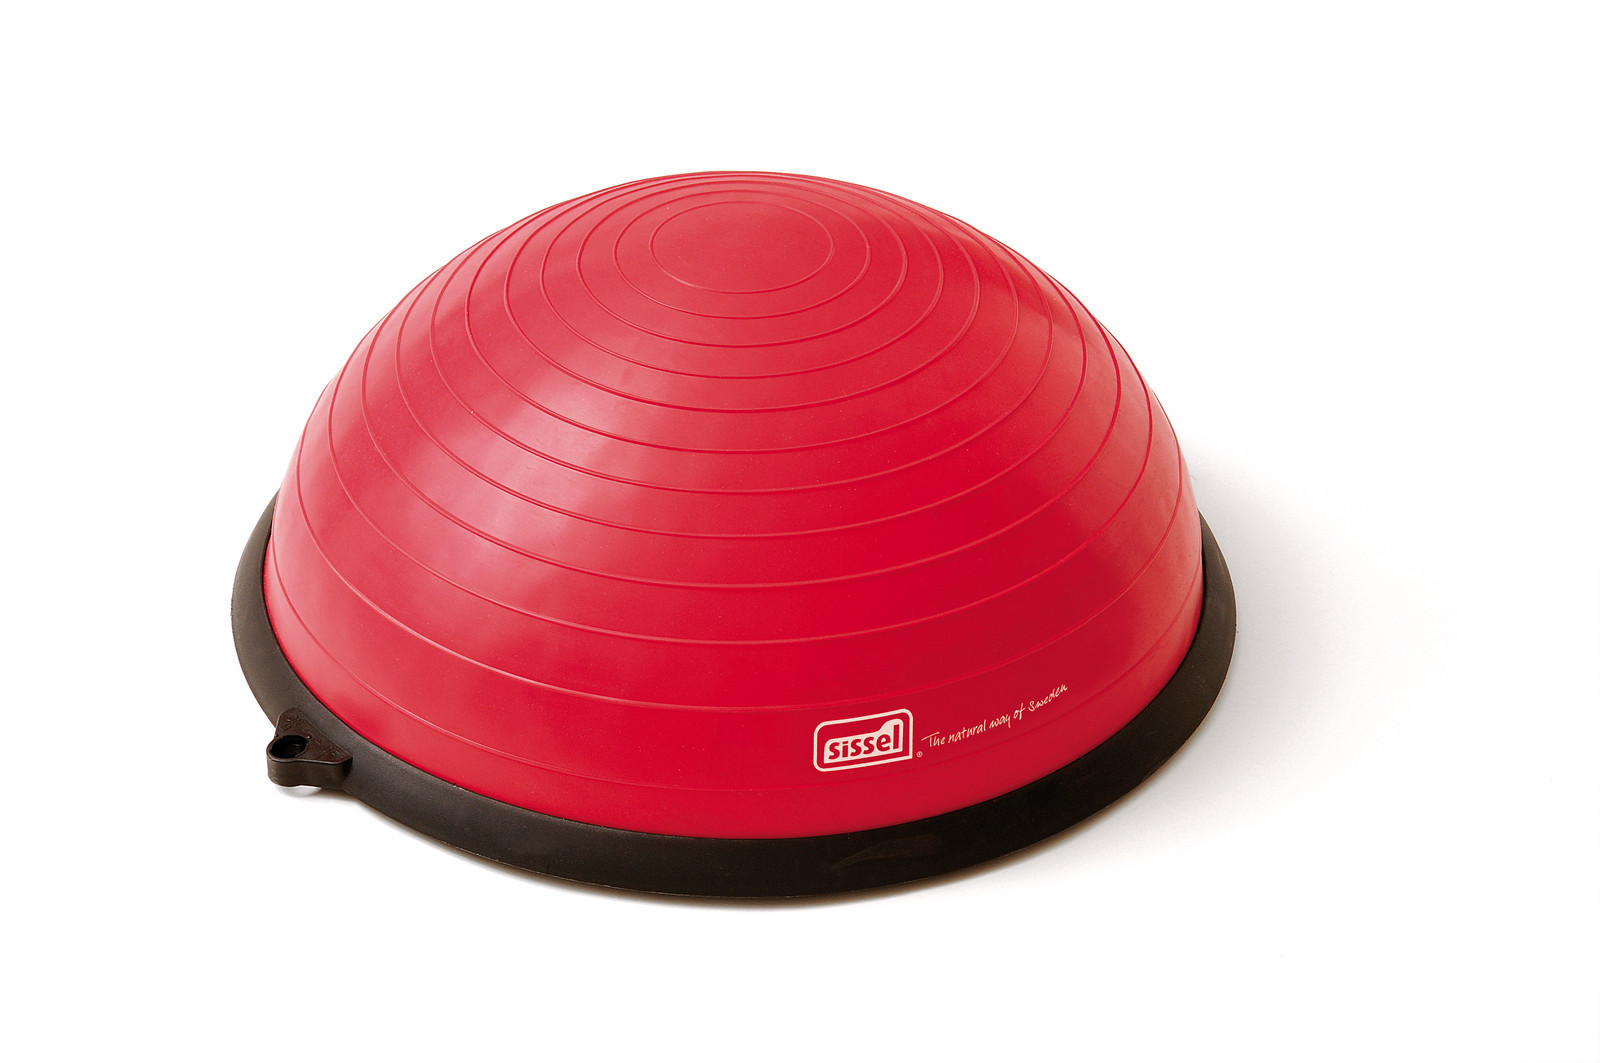 Fit Dome Pro